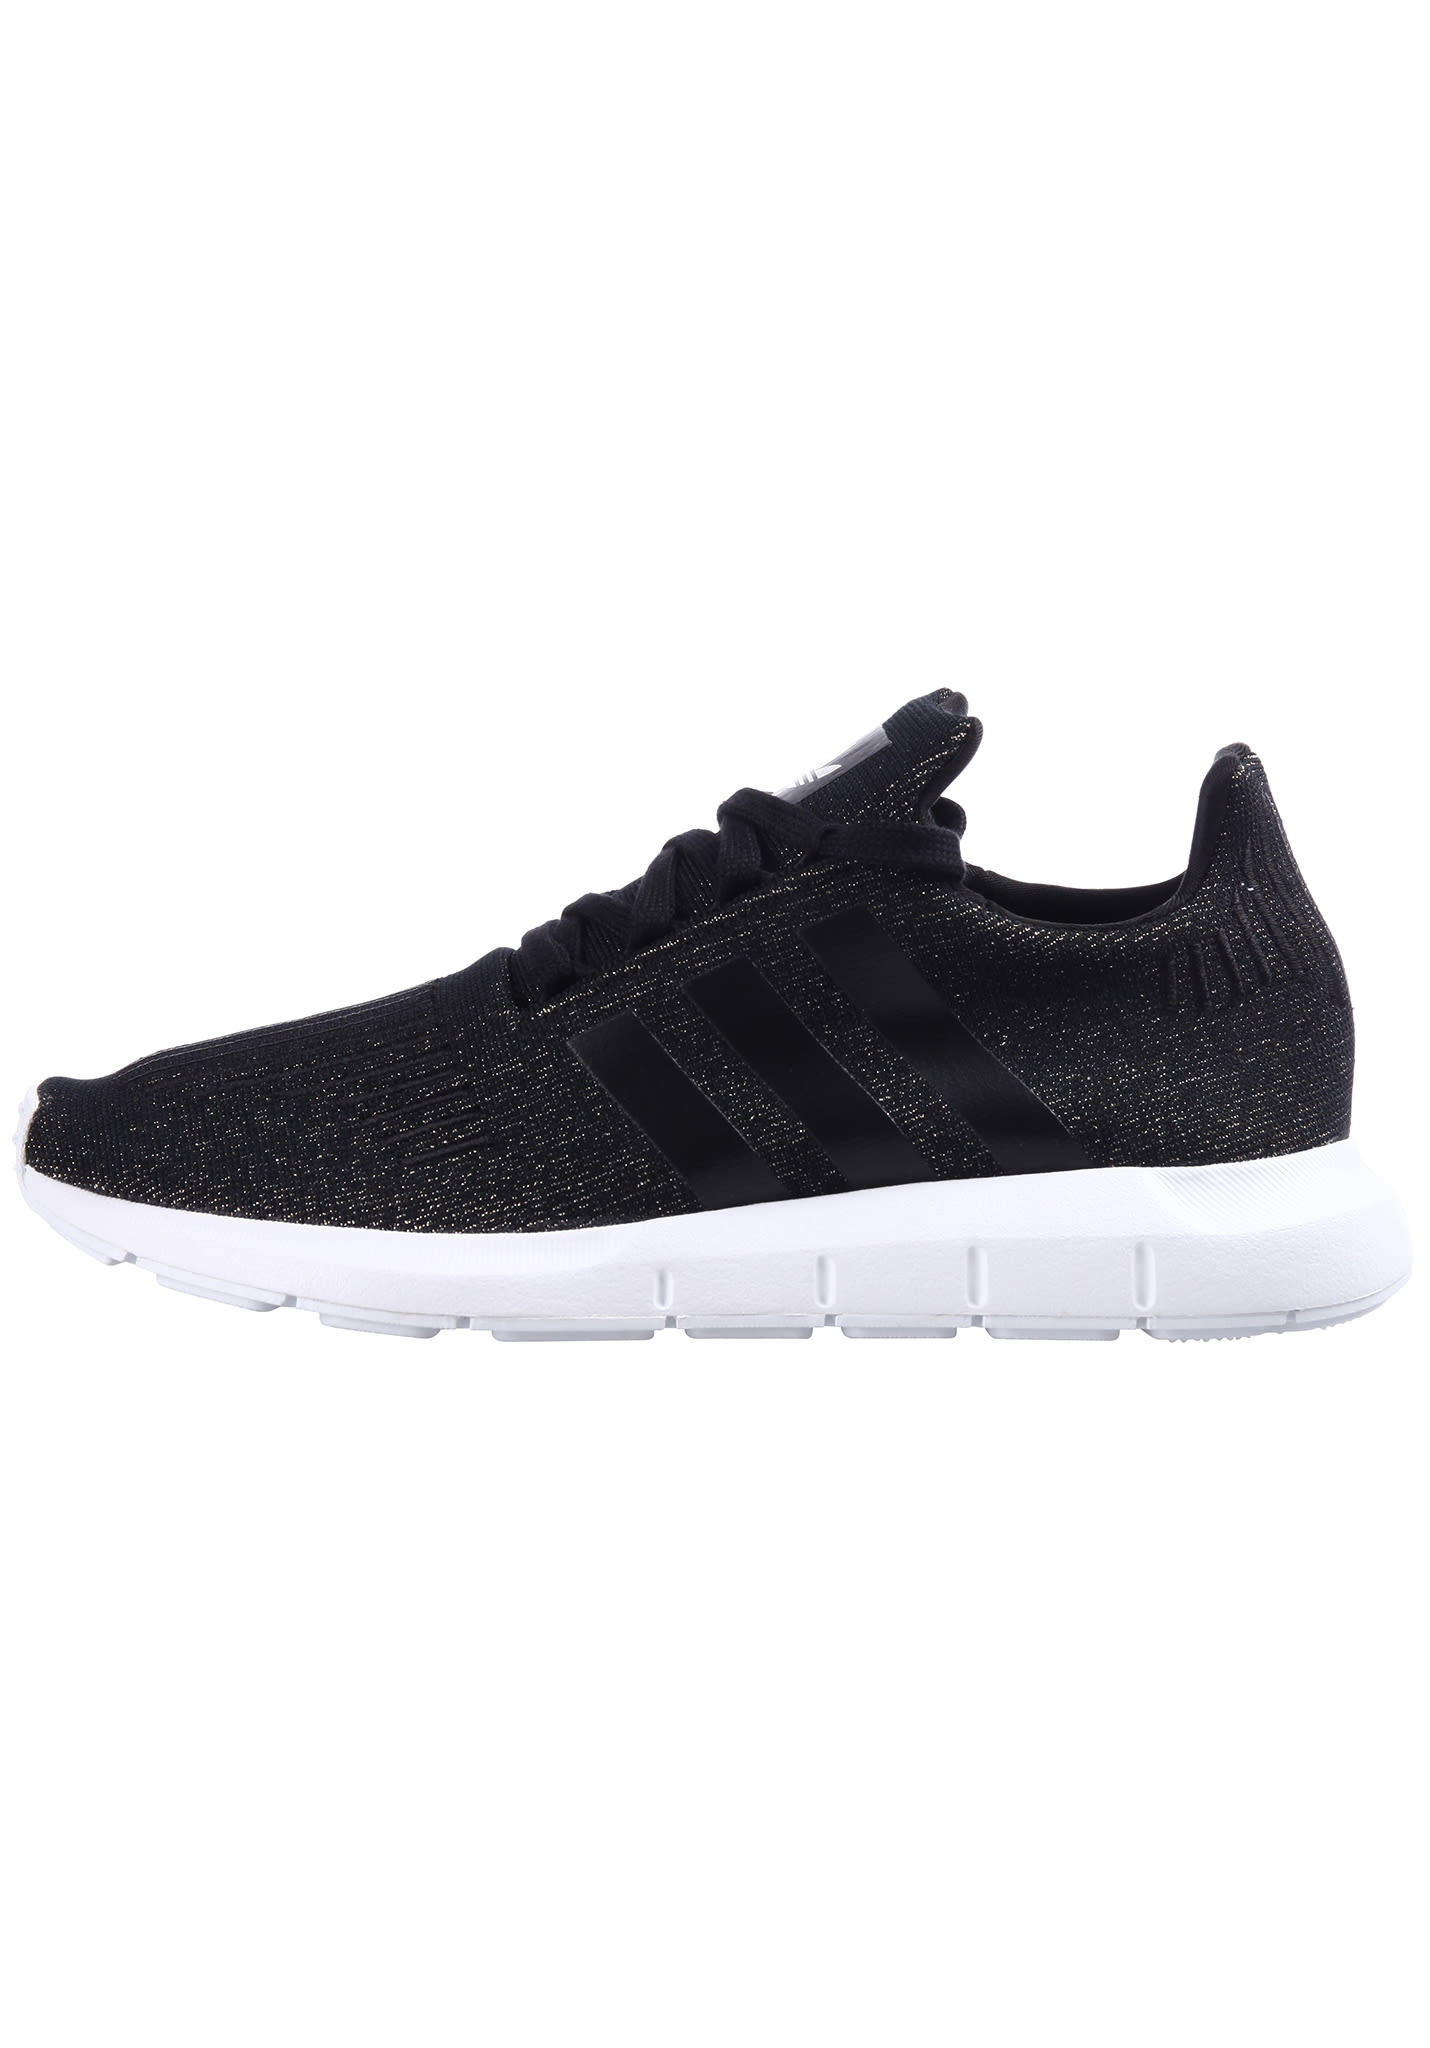 adidas Originals Swift Run - Sneaker für Damen - Schwarz